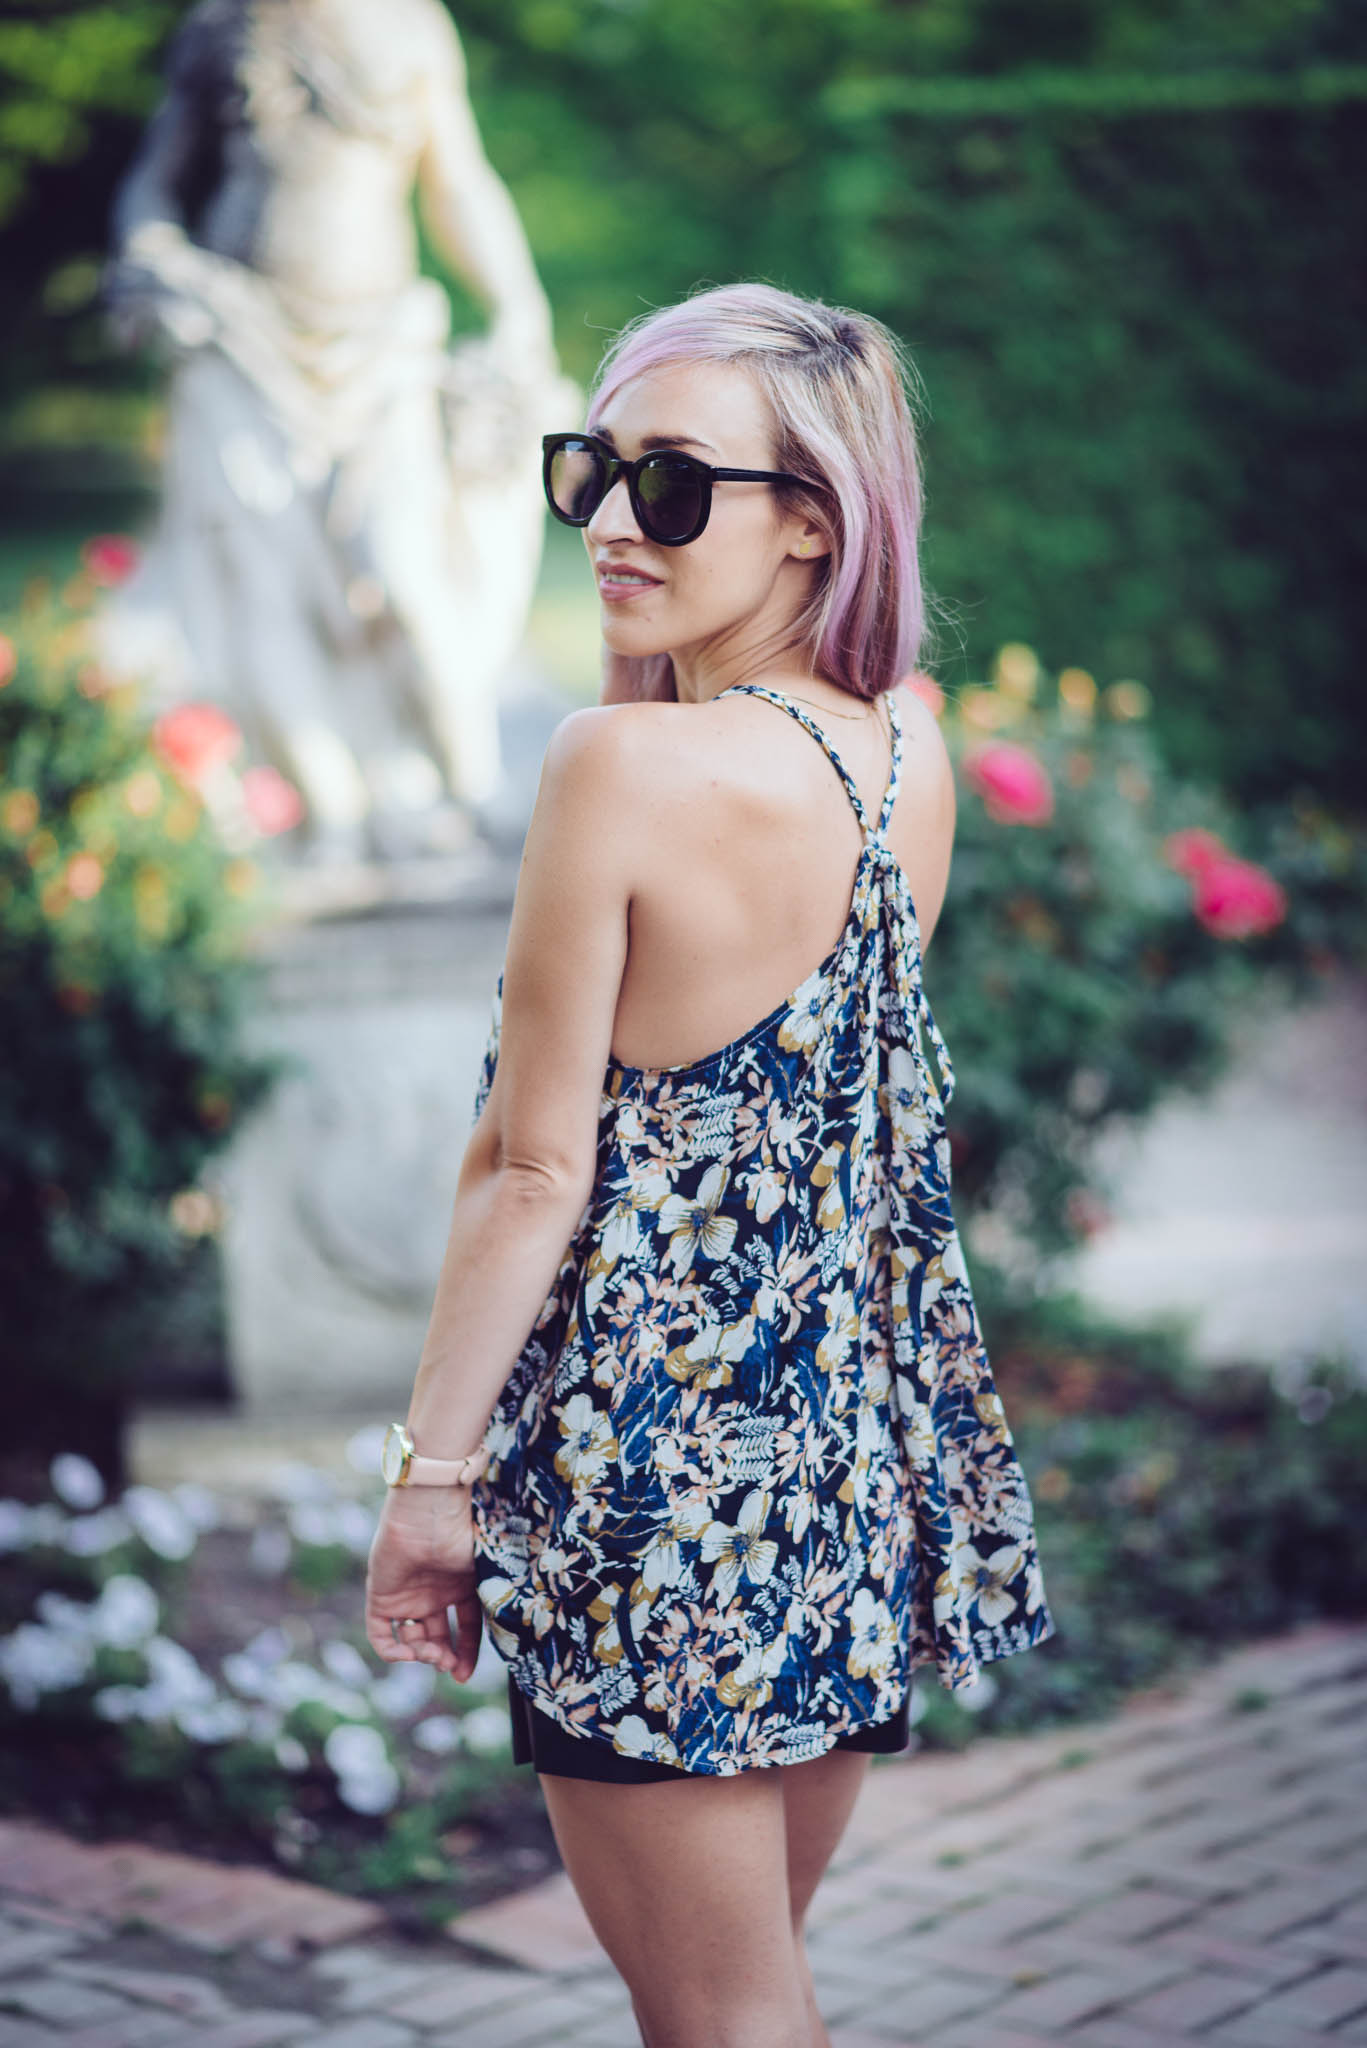 Wearing TKB   Floral Tank  & Blush  Open Toe Heel Booties